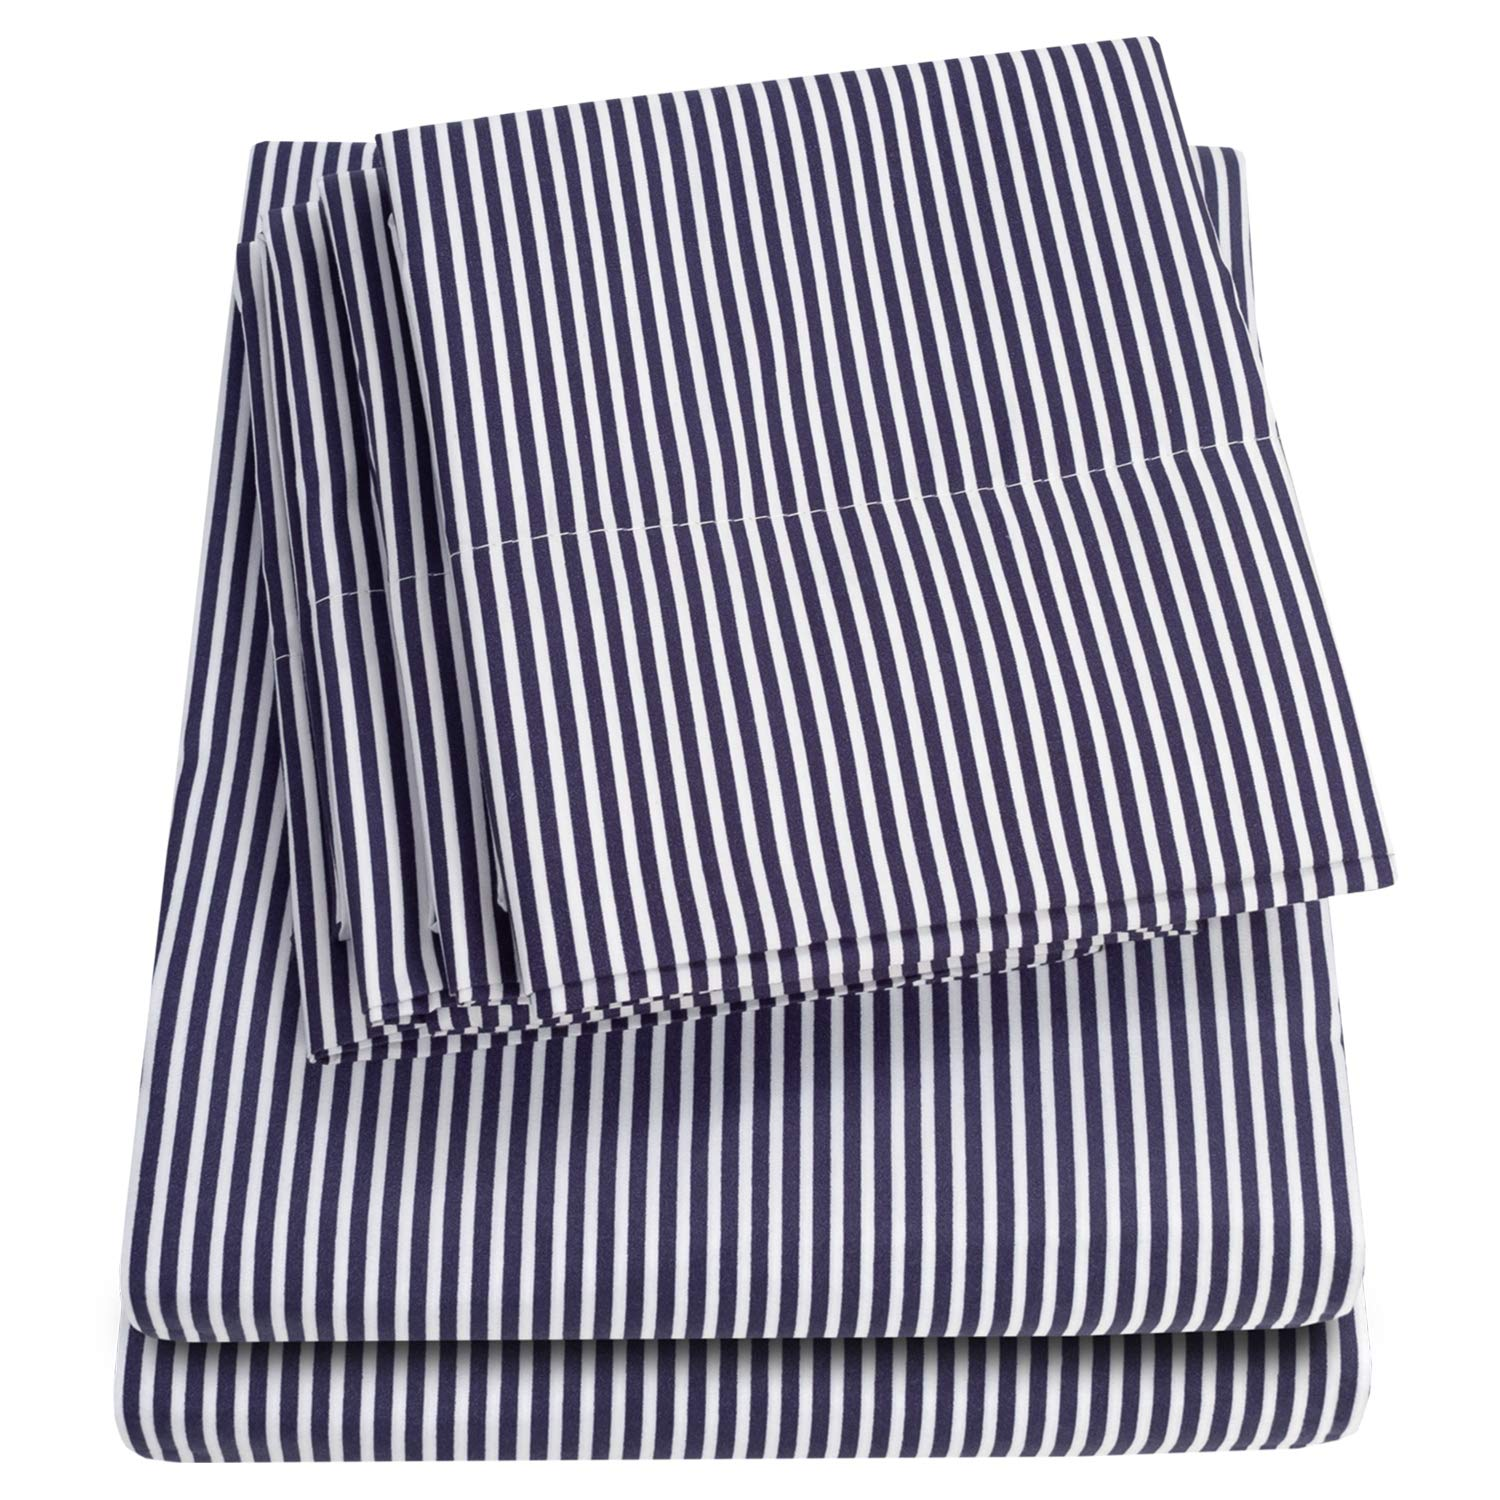 Sweet Home Collection Sheets 6 Piece 1500 Thread Count Deep Pocket Hypoallergenic Brushed Microfiber Soft and Comfortable Bedding Set, Queen, Classic Stripe Navy,